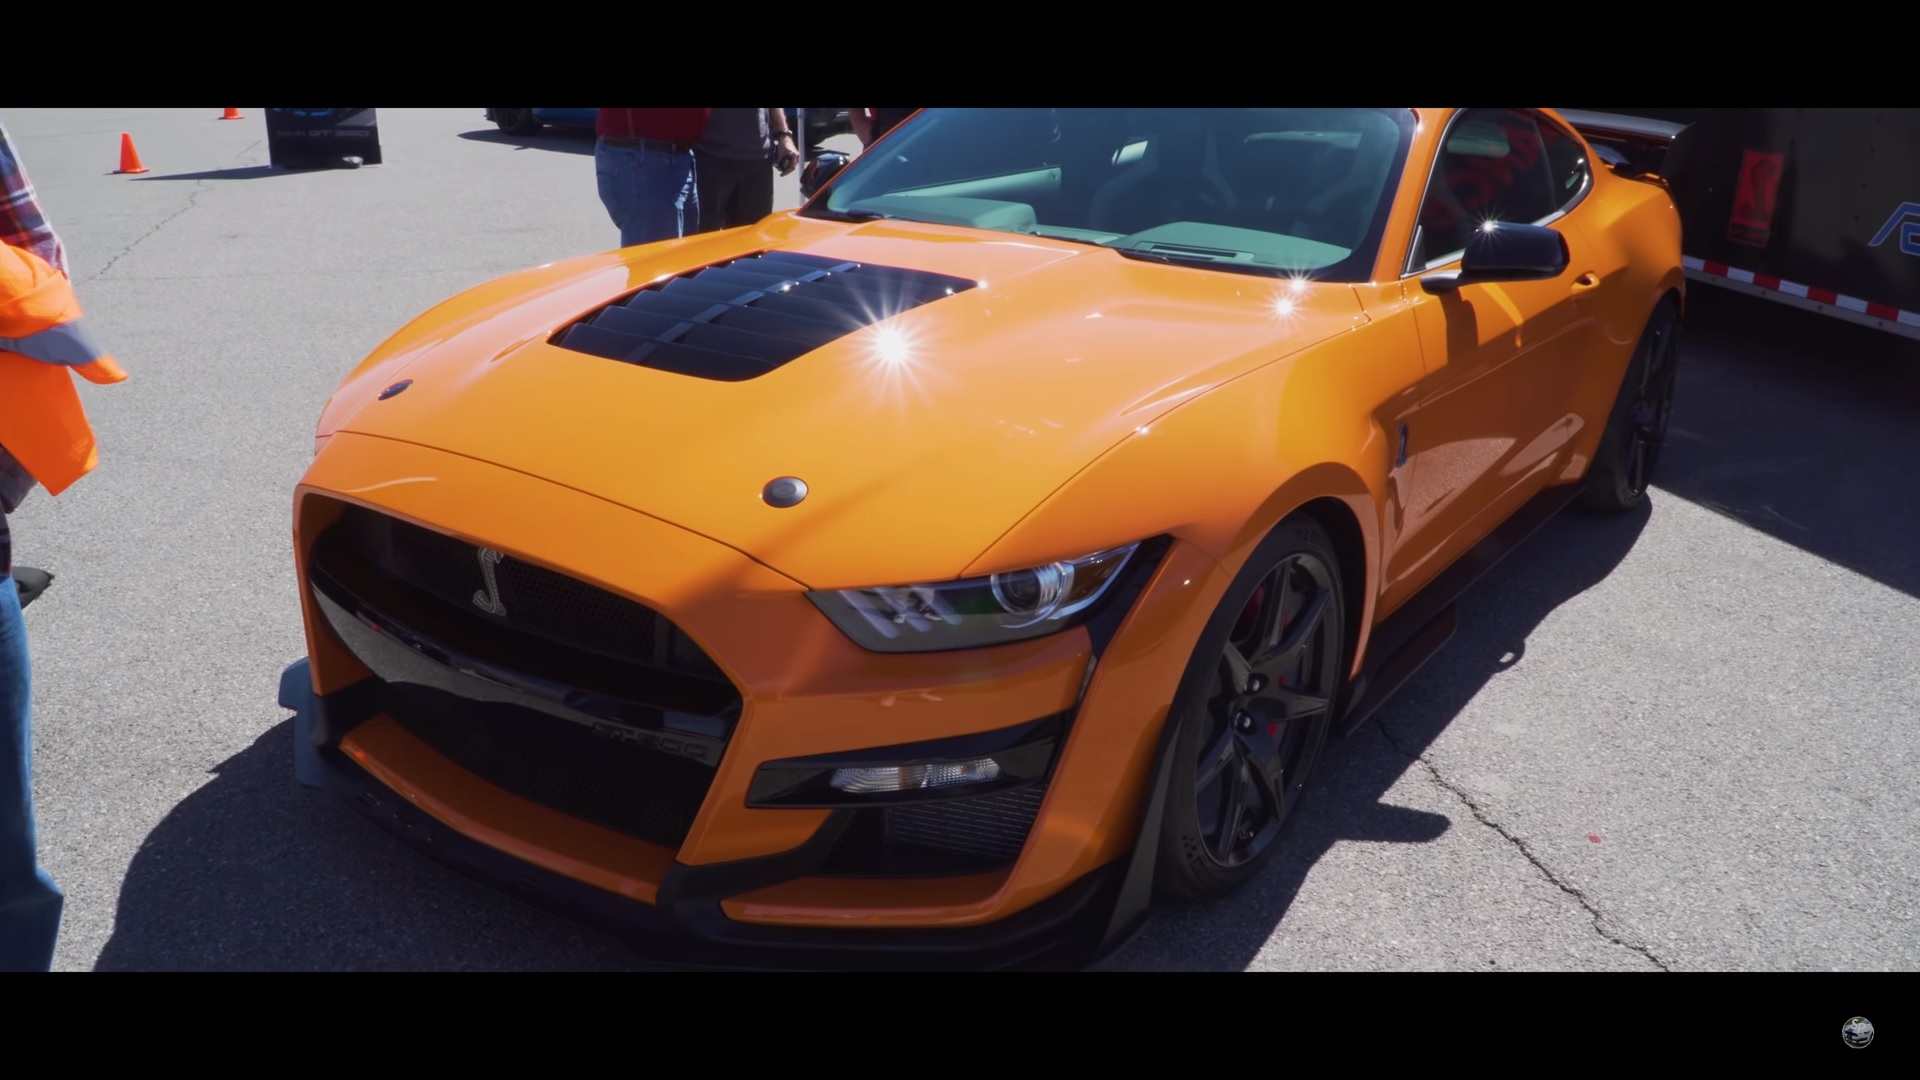 2020 ford mustang shelby gt500 revs and prowls the streets of las vegas video